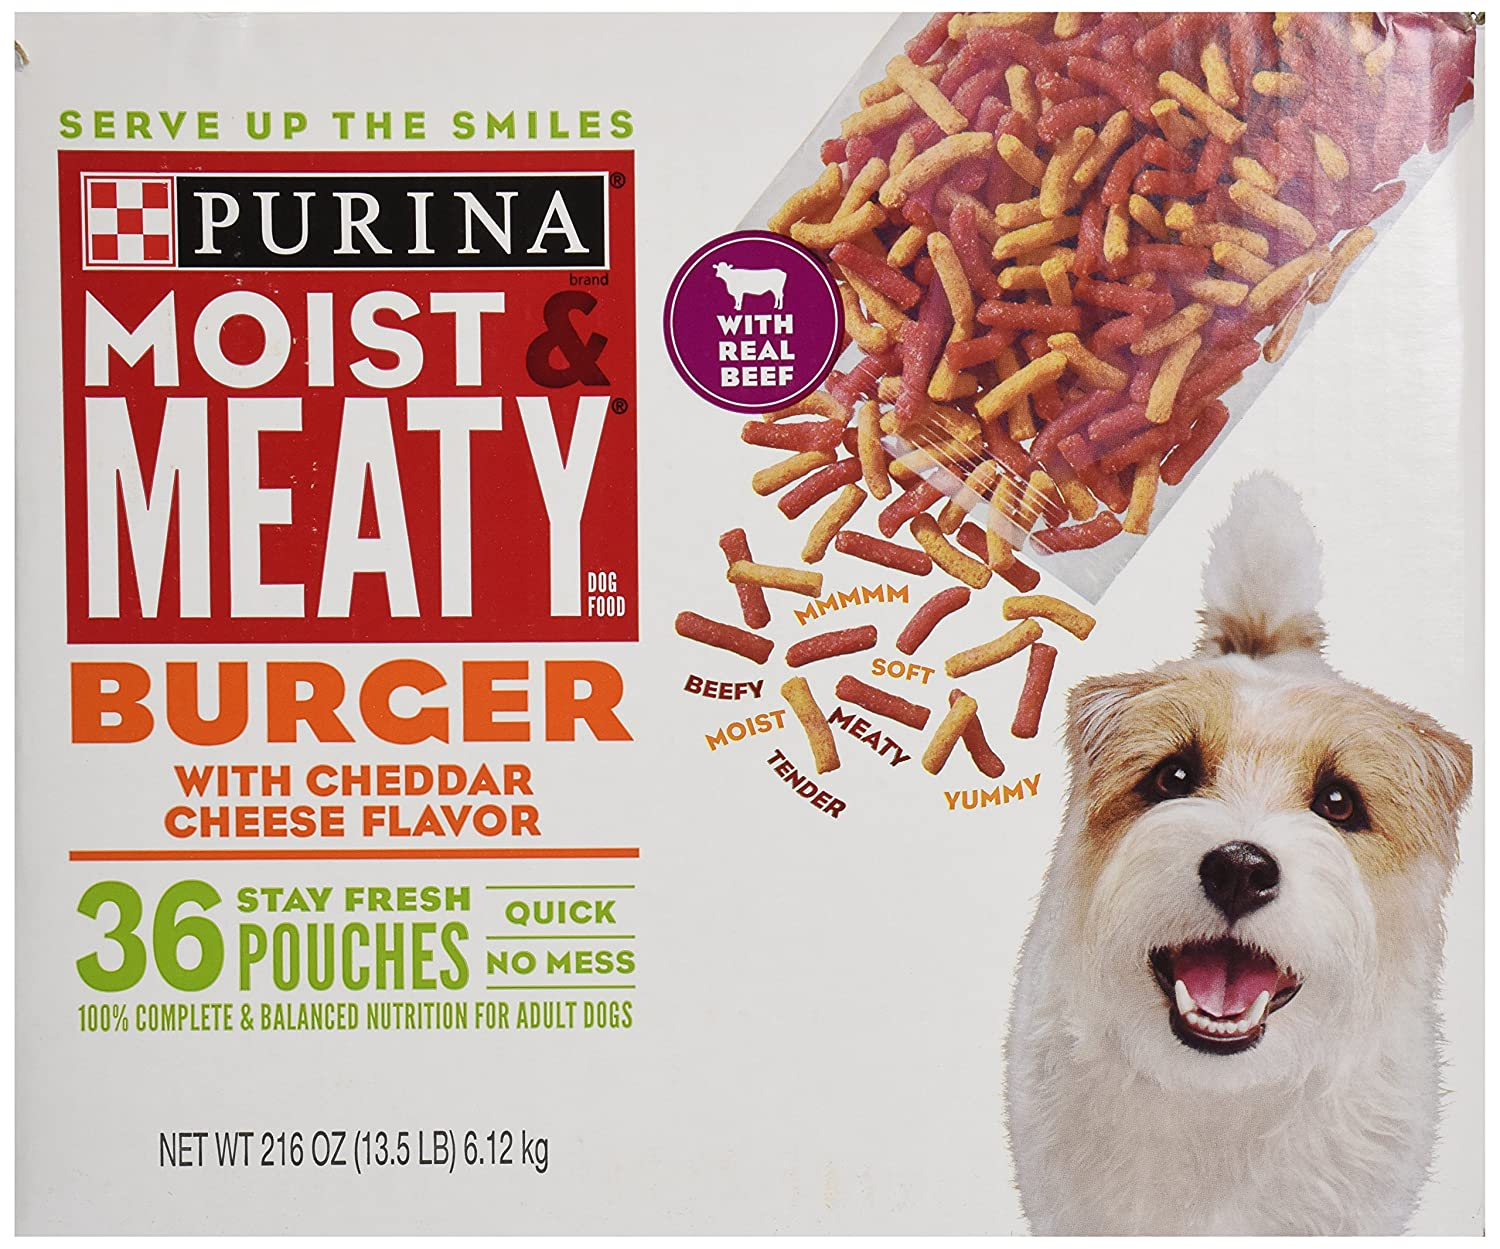 Purina Moist Meaty Dog Food, Burger with Cheddar Cheese Flavor, 36 Pouches, 6 oz each